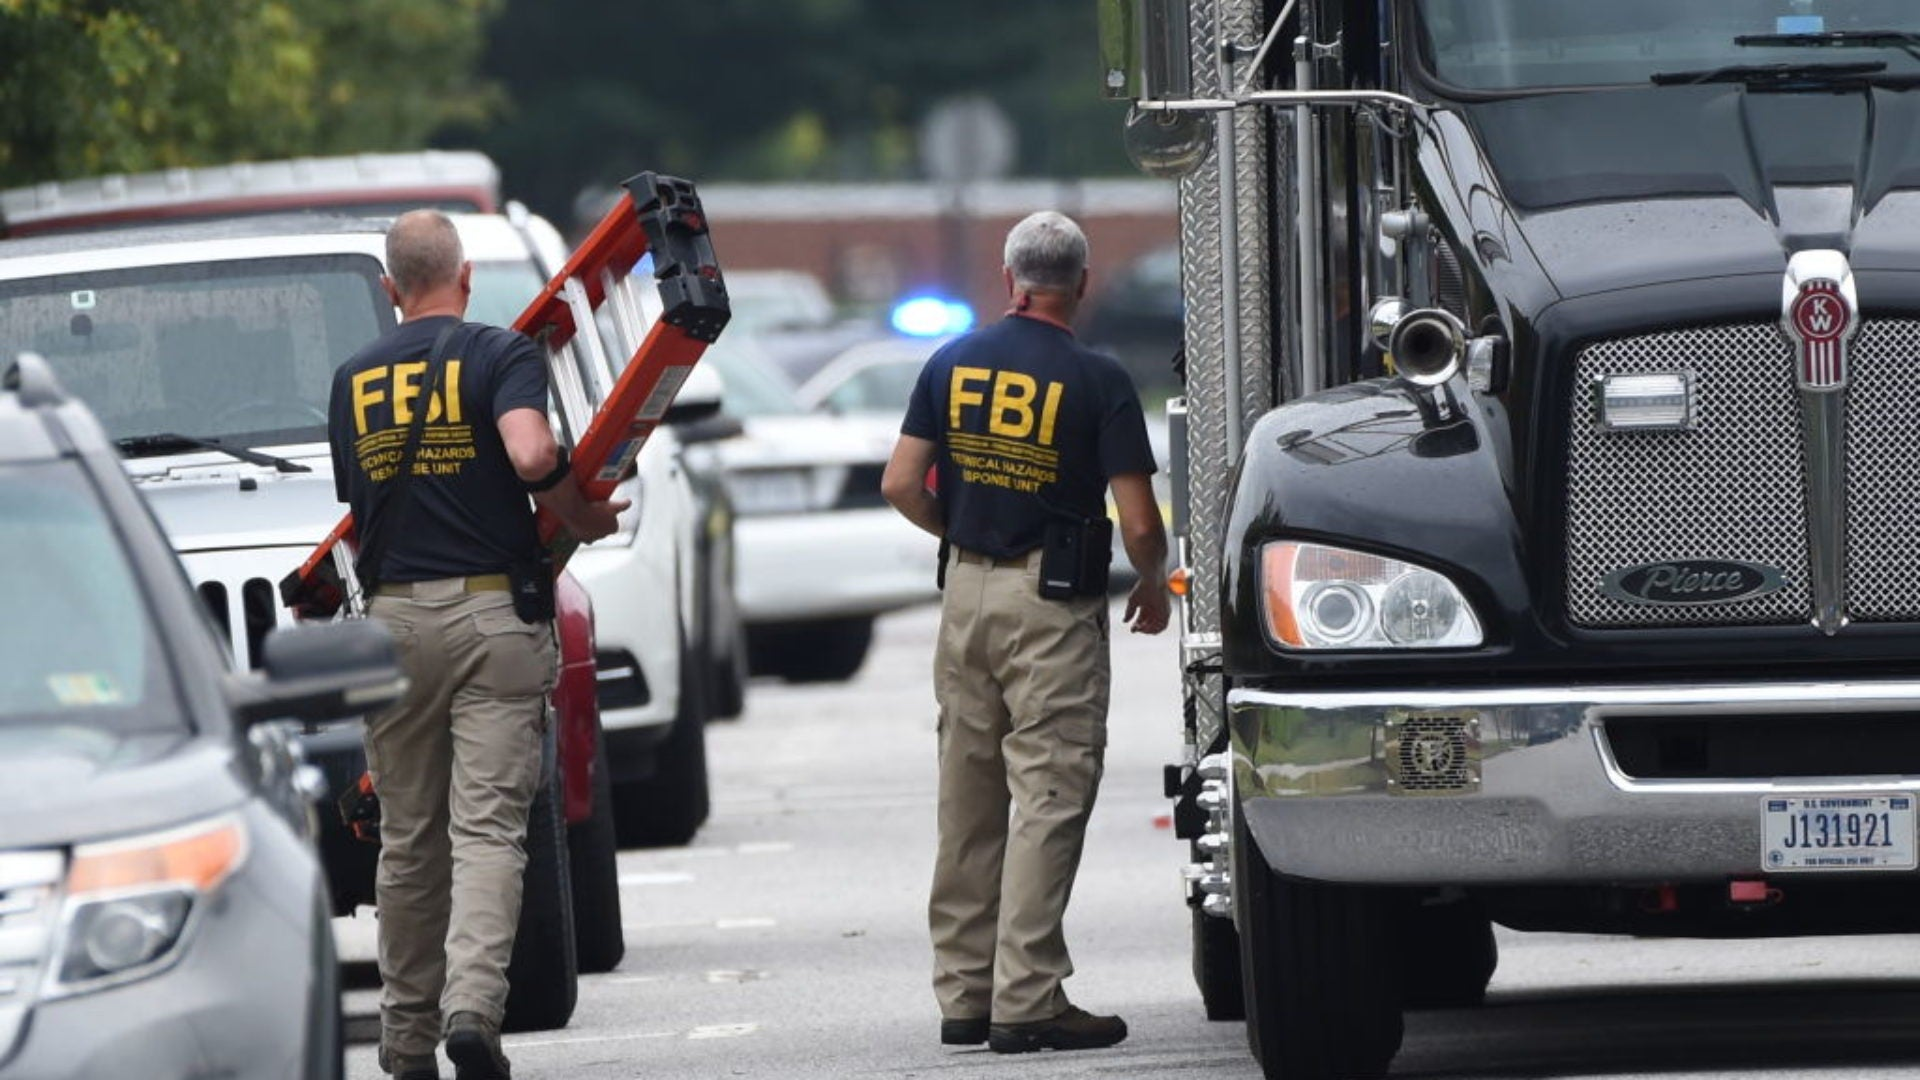 Virginia Beach Shooting: 12 Dead After 'Disgruntled Employee' Goes On Rampage